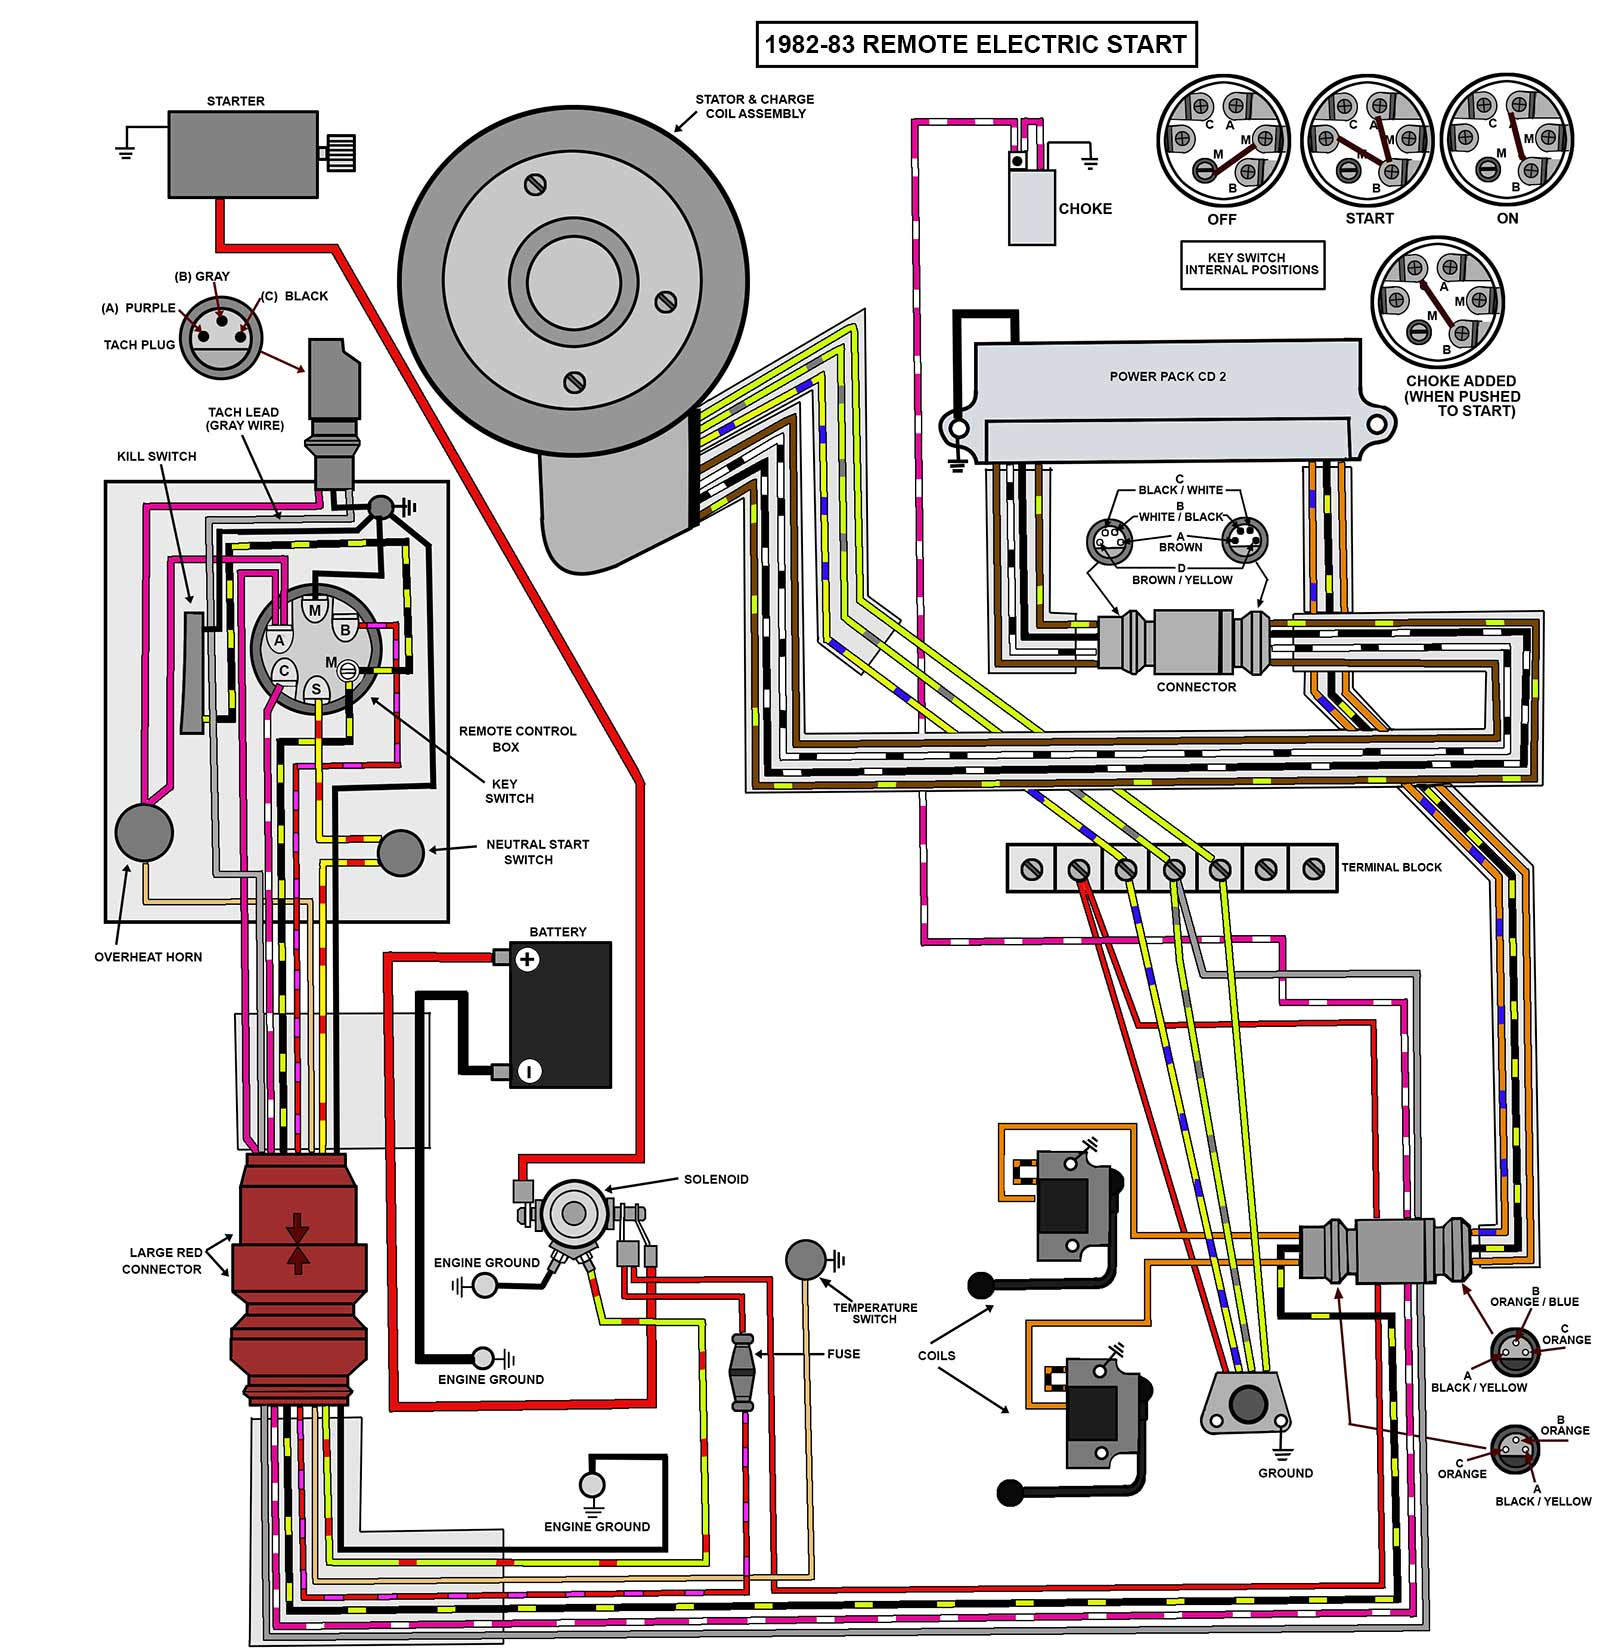 25_35_82 83_elec remote mastertech marine evinrude johnson outboard wiring diagrams 1987 90 hp mercury outboard wiring diagram at fashall.co